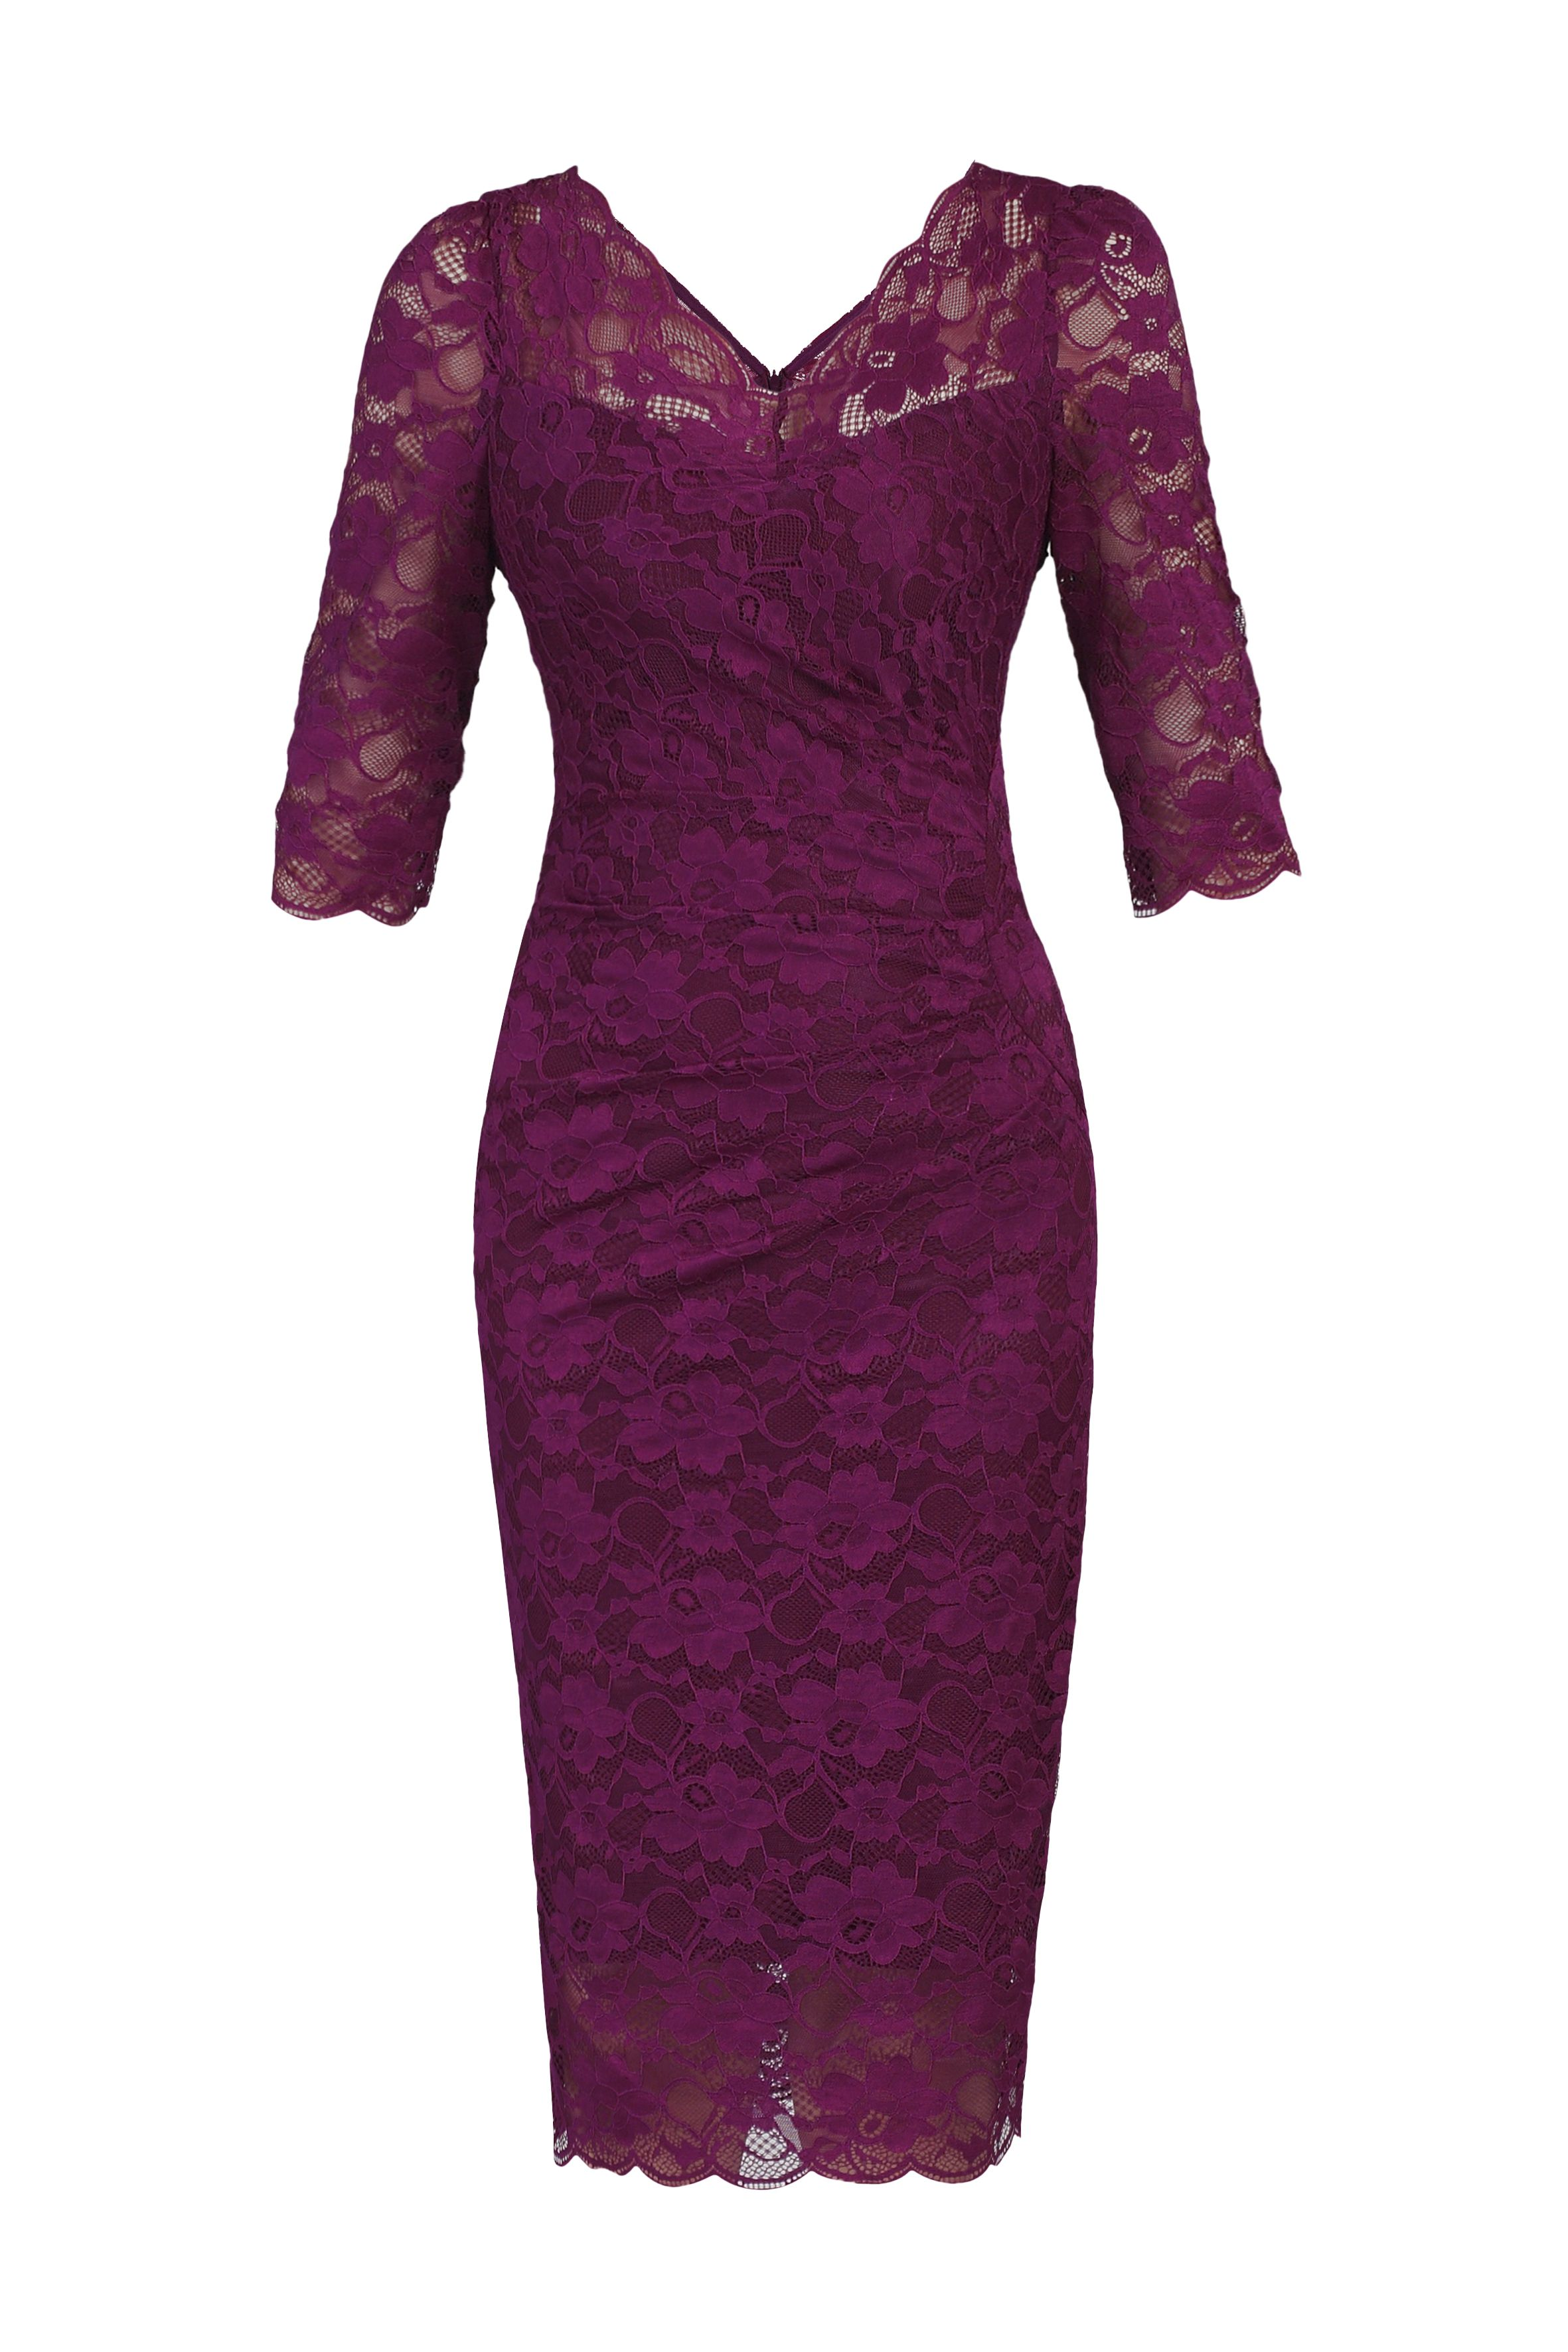 Jolie Moi 3/4 Sleeve V Neck Ruched Lace Dress, Berry